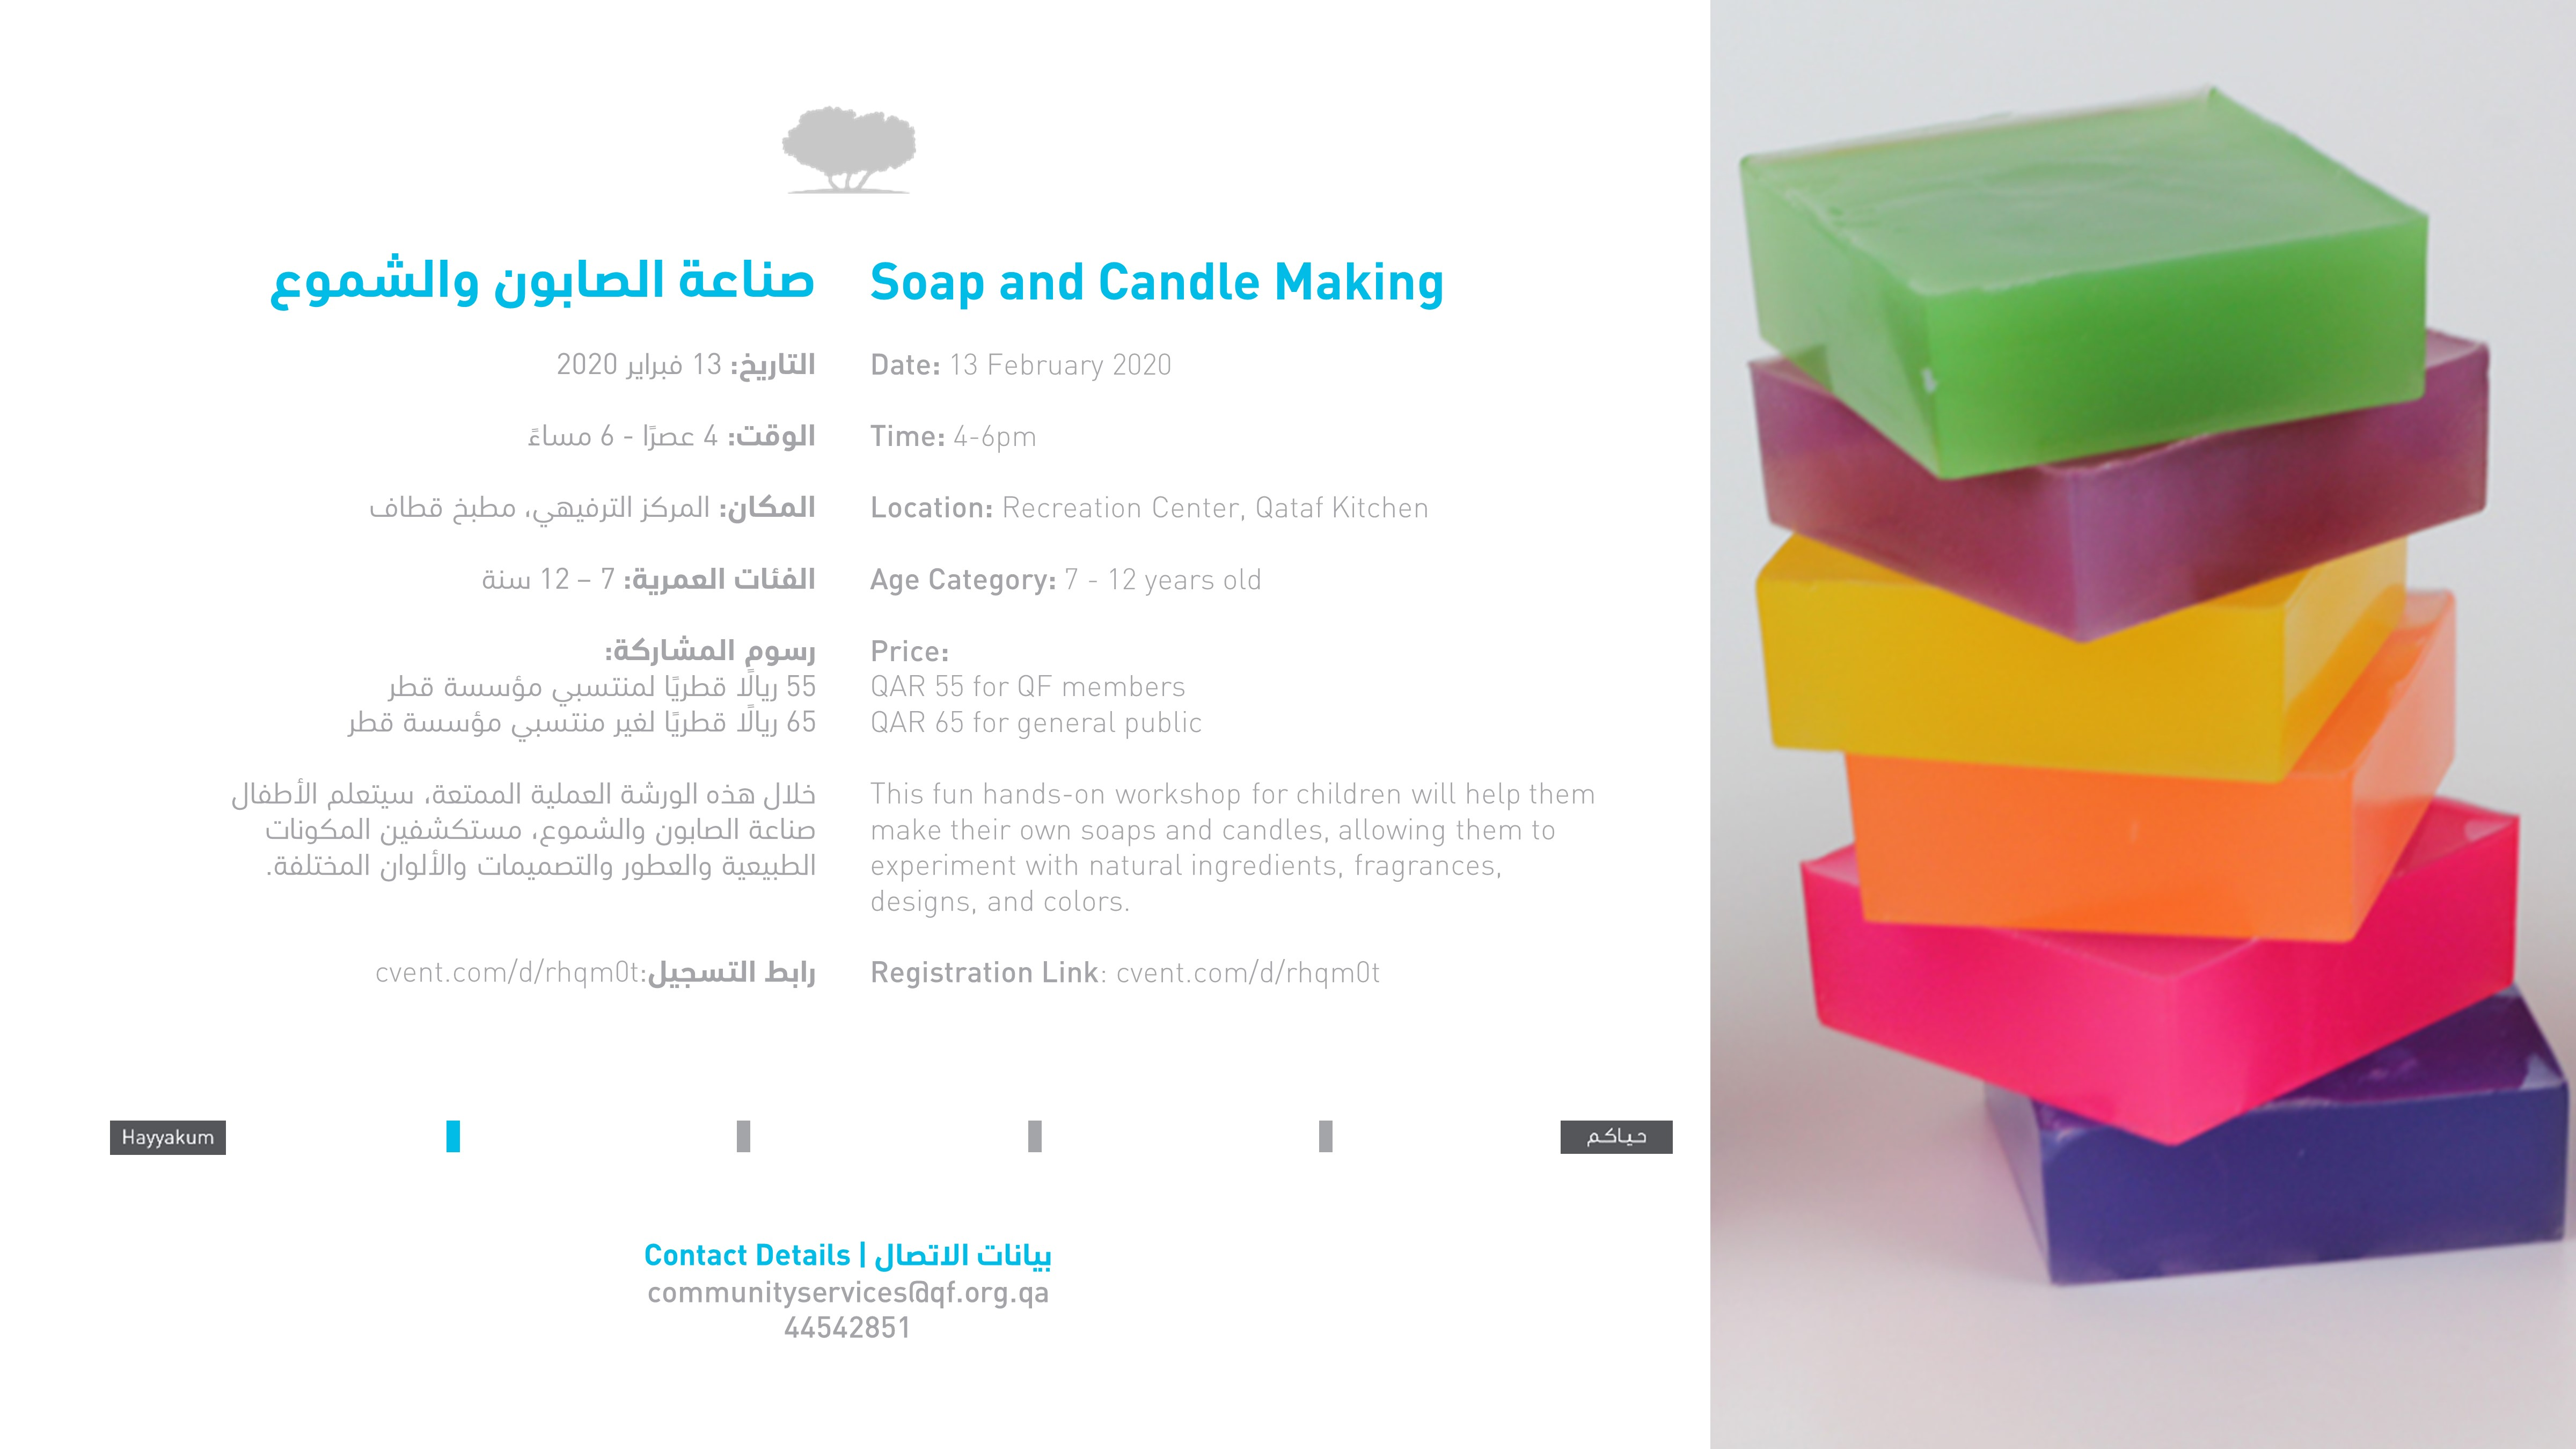 Soap and Candle Making Class for Kids